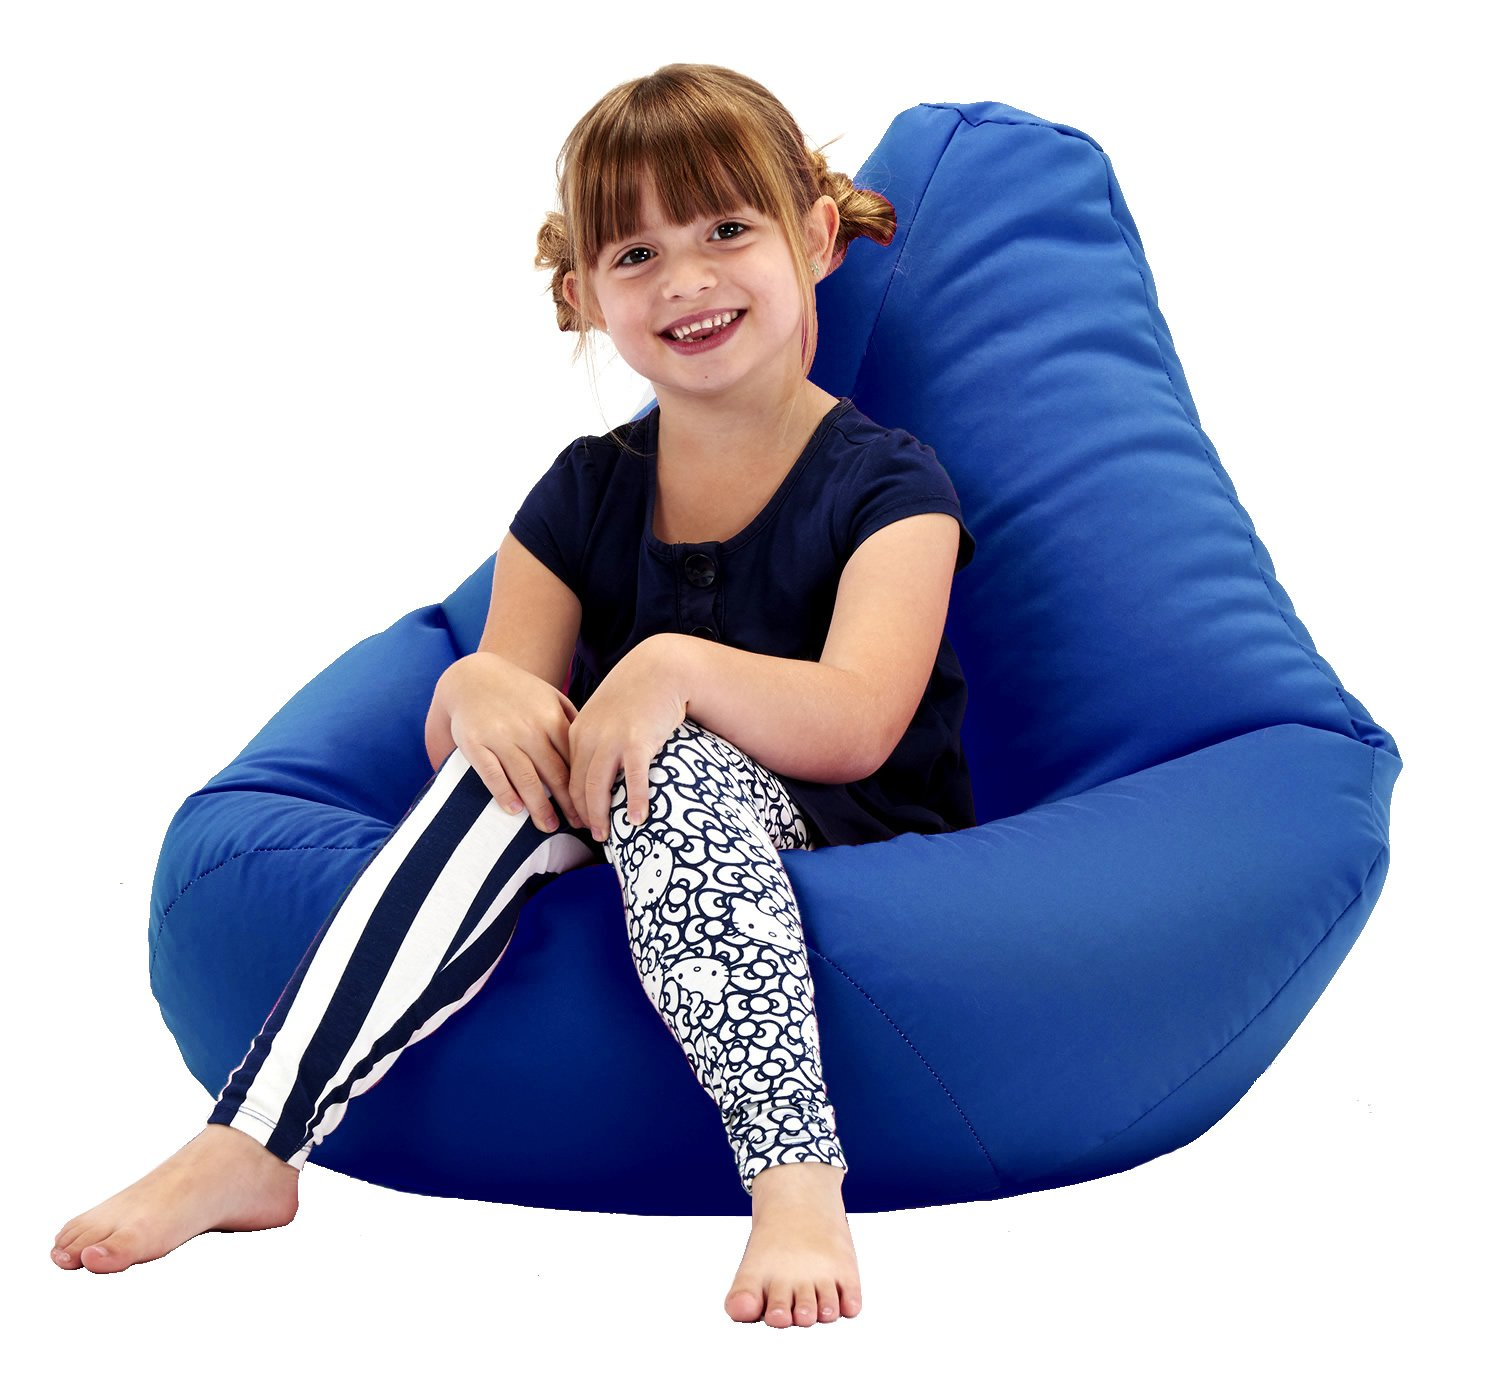 GARDEN FURNITURE Aqua Water Resistant Beanbag Lounger For Kids Perfect For Indoor or Outdoor Bean bags Beautiful Beanbags AQA-OD-KHB